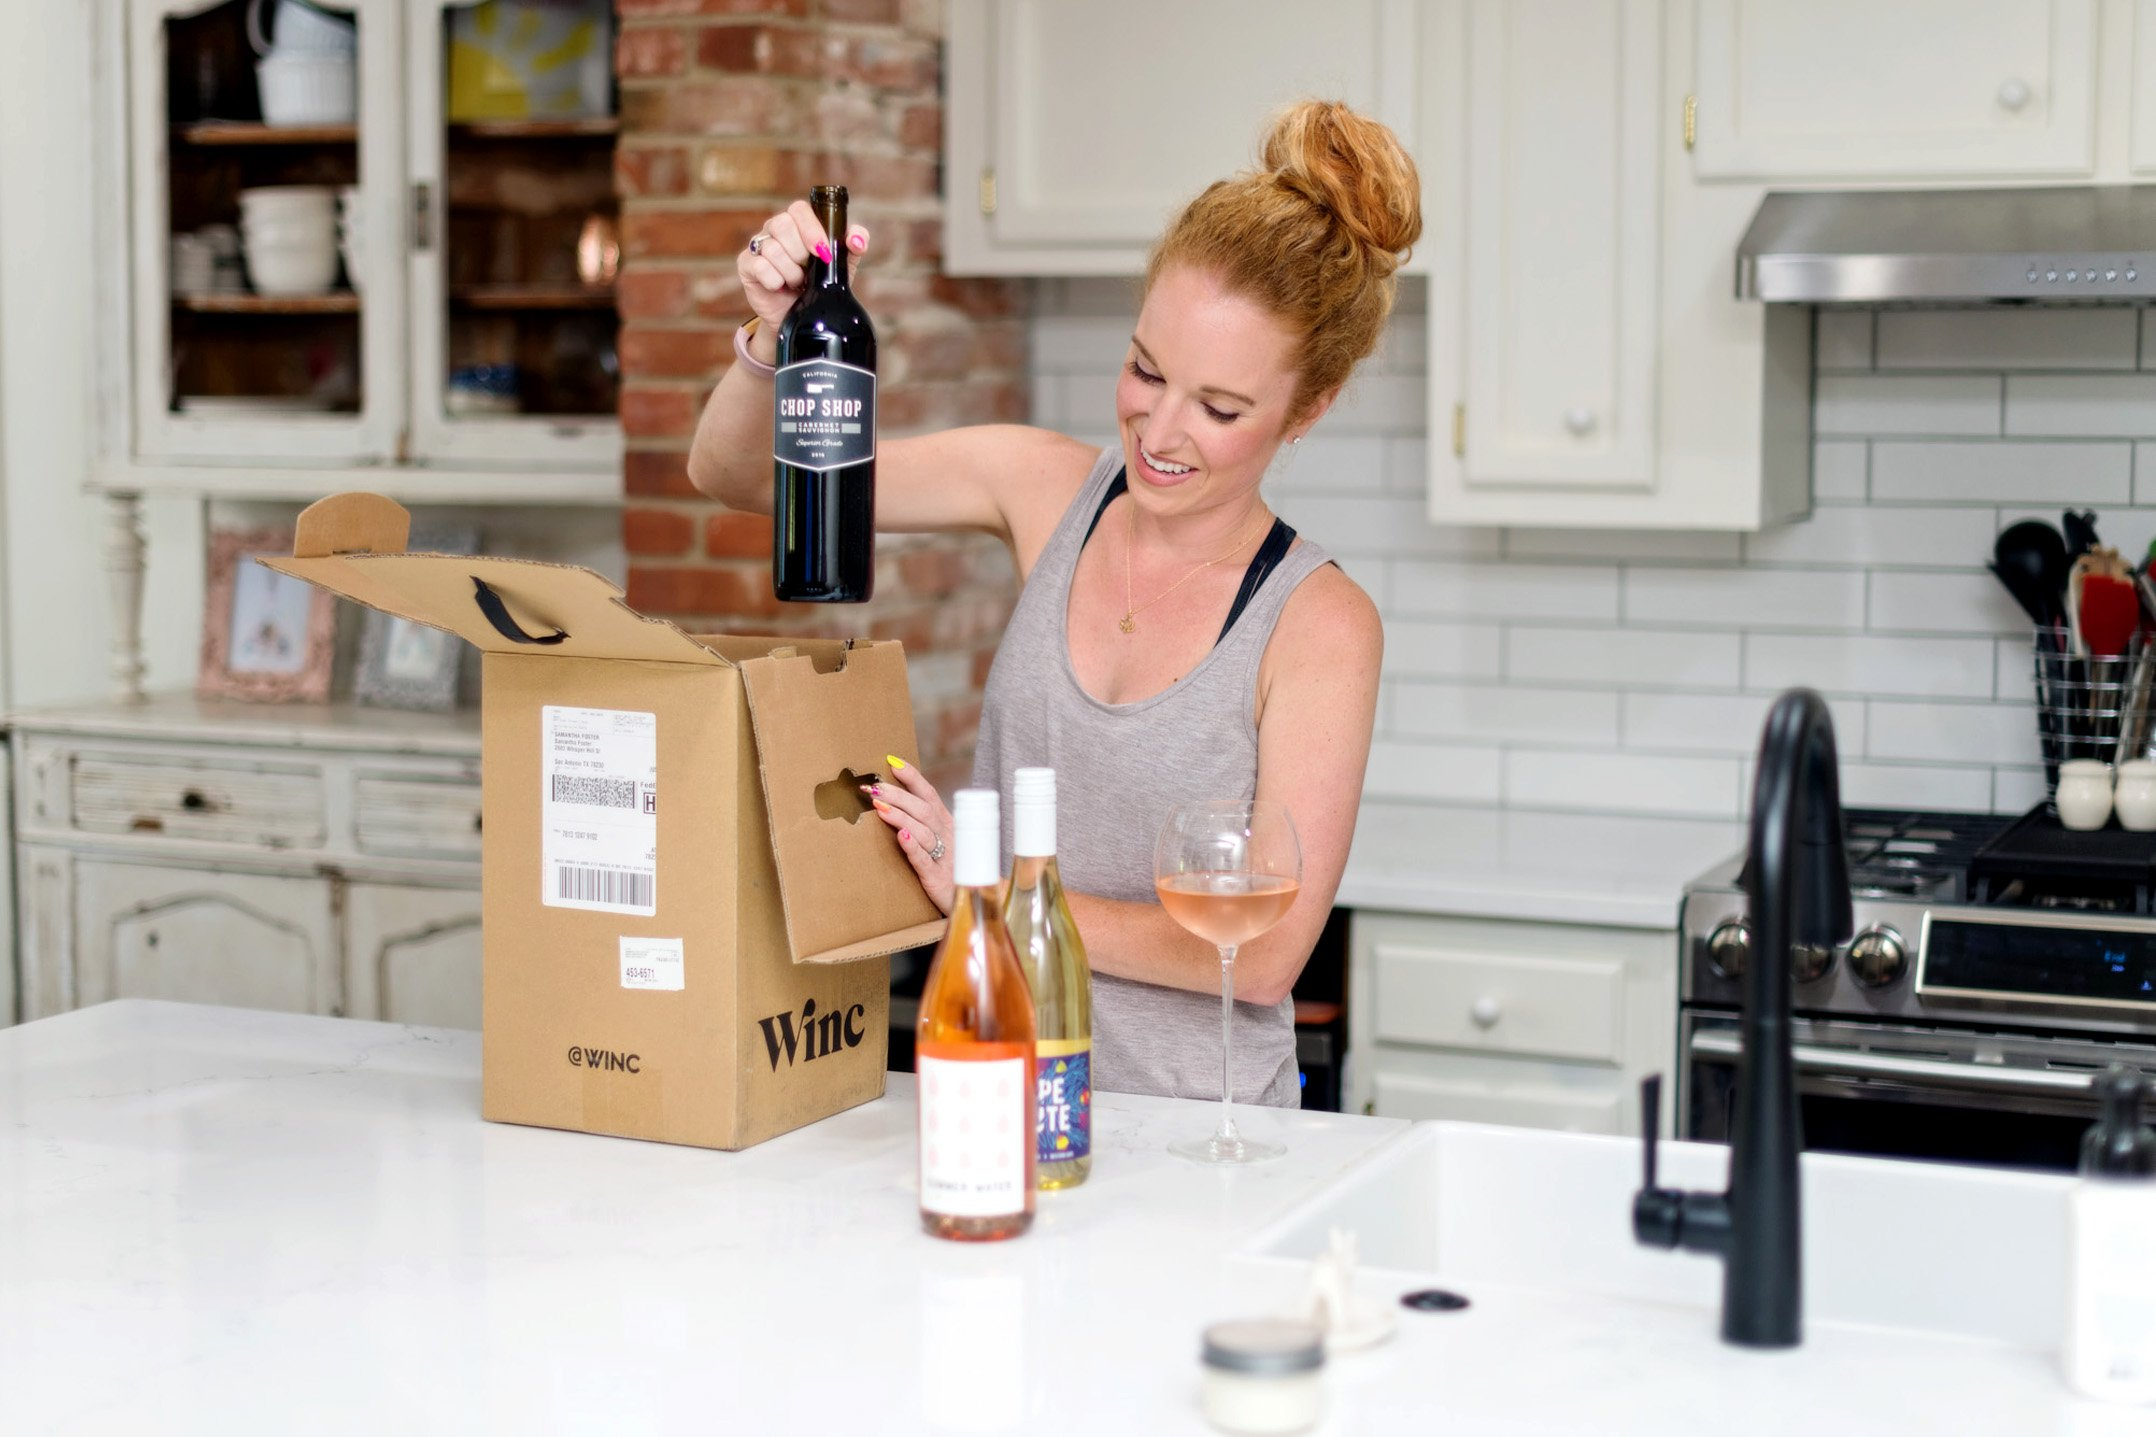 WINC Wine Review – Wine Subscription Box